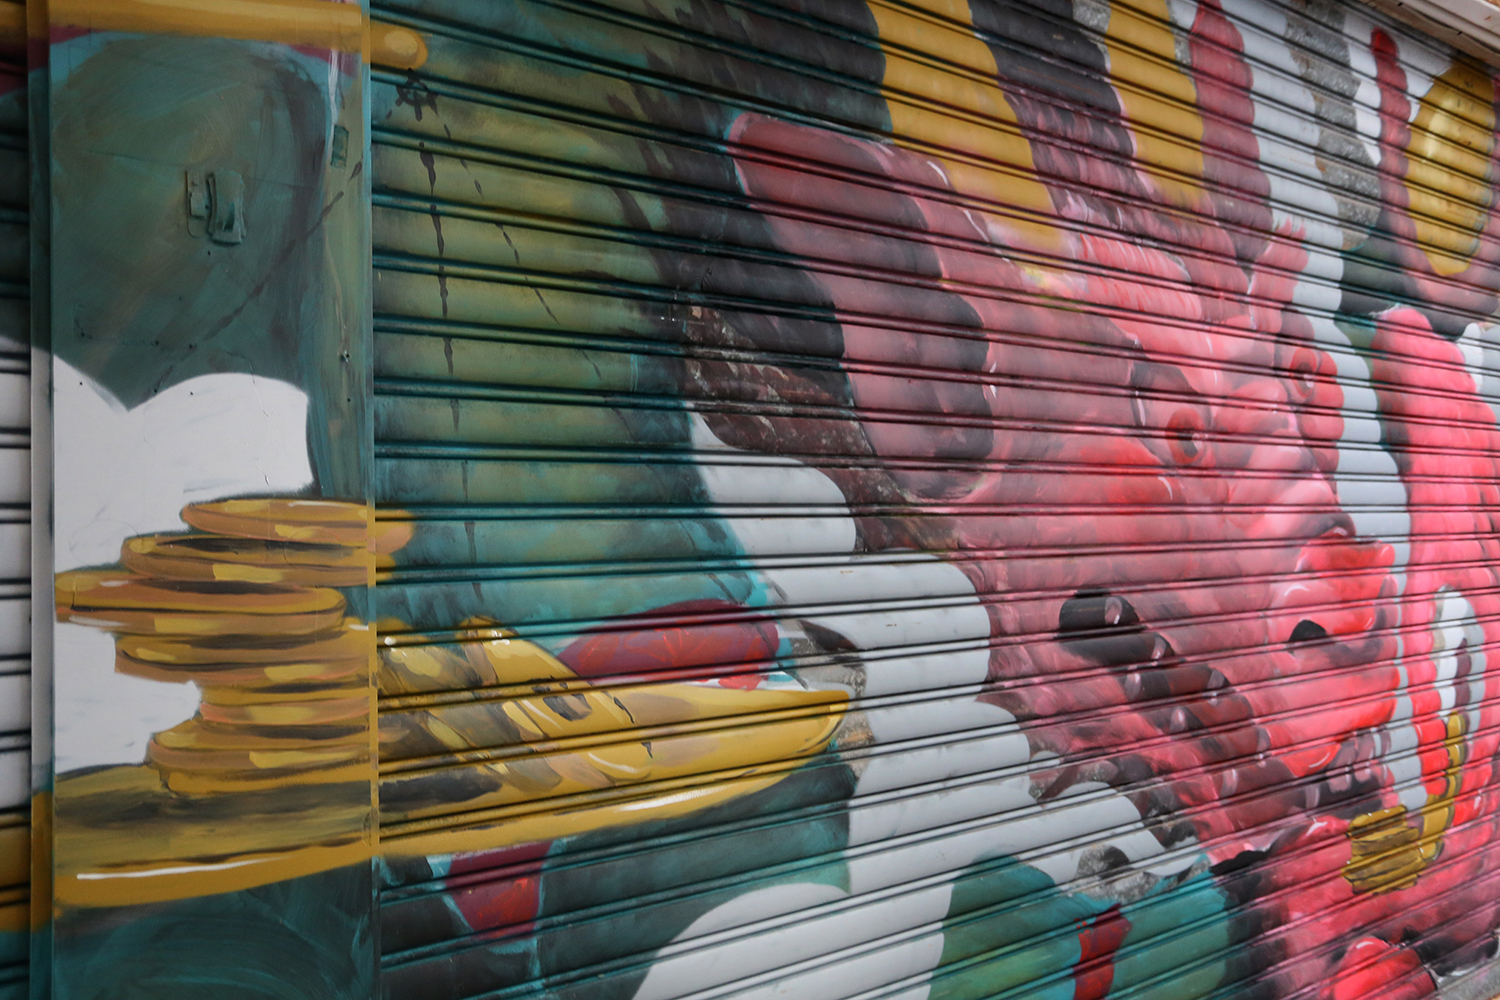 barlo-new-shutter-at-stanley-market-hong-kong-07